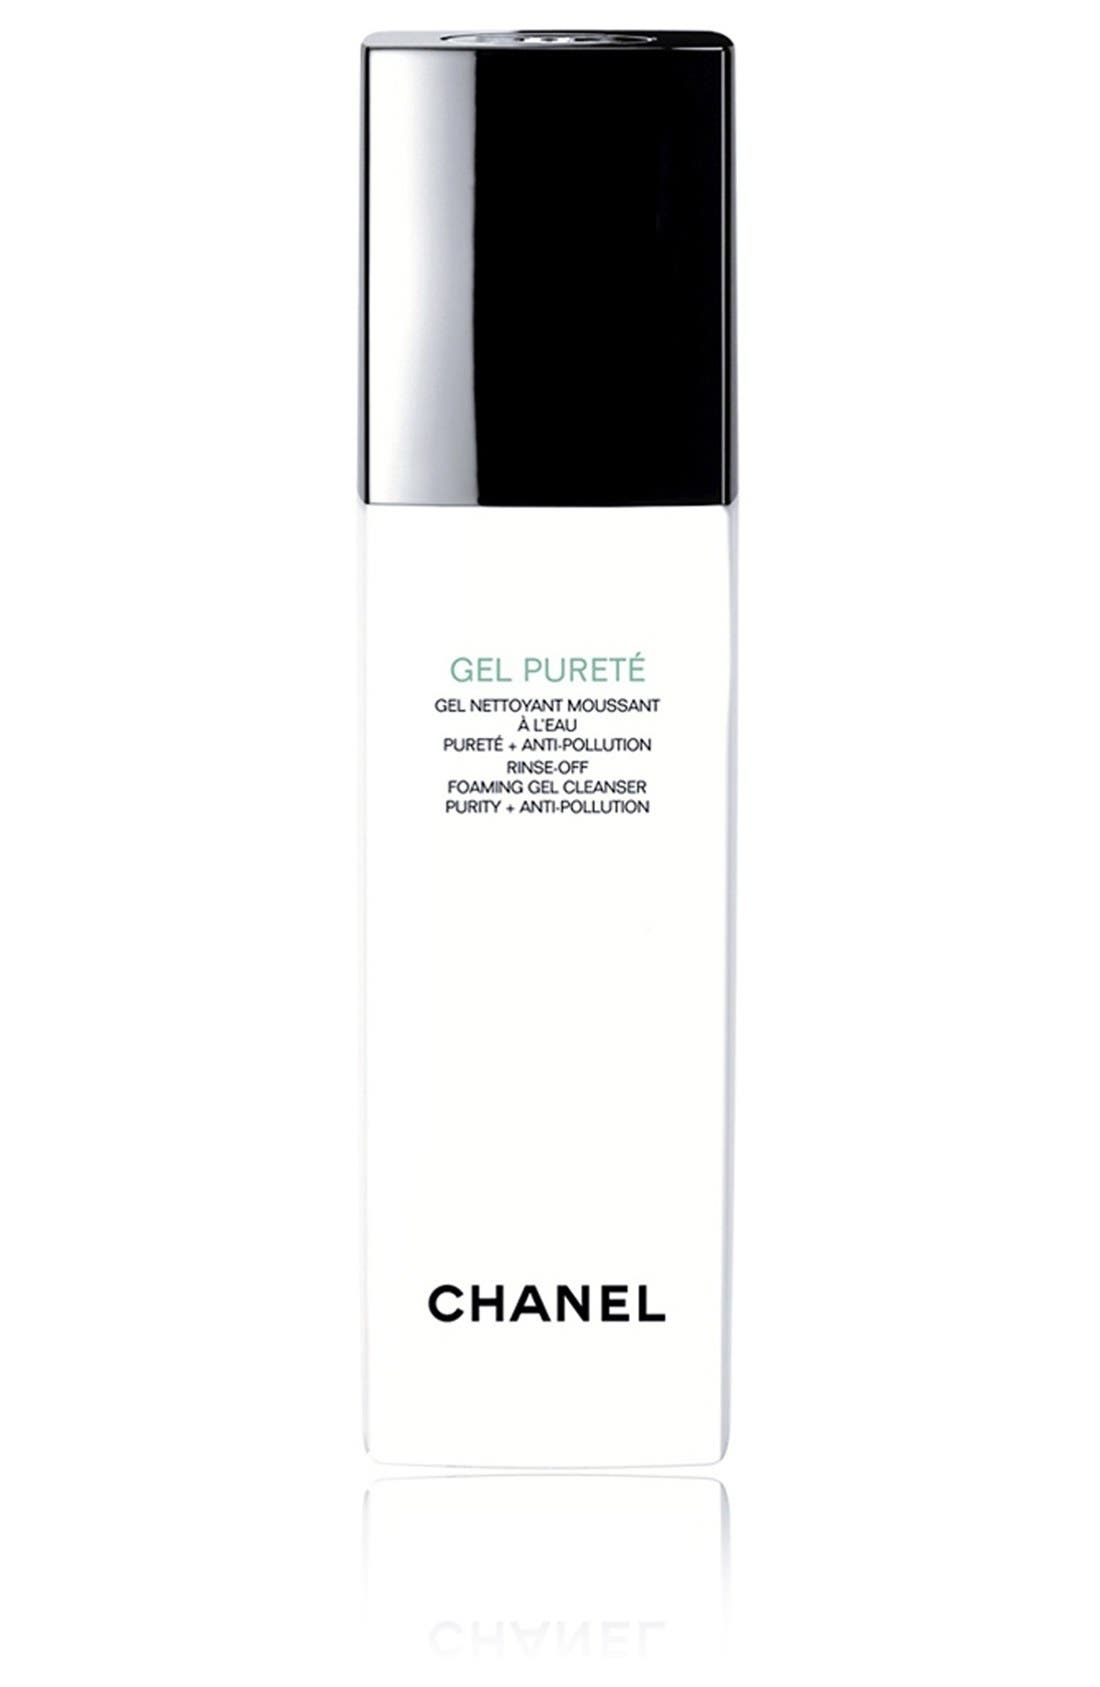 CHANEL GEL PURETÉ 